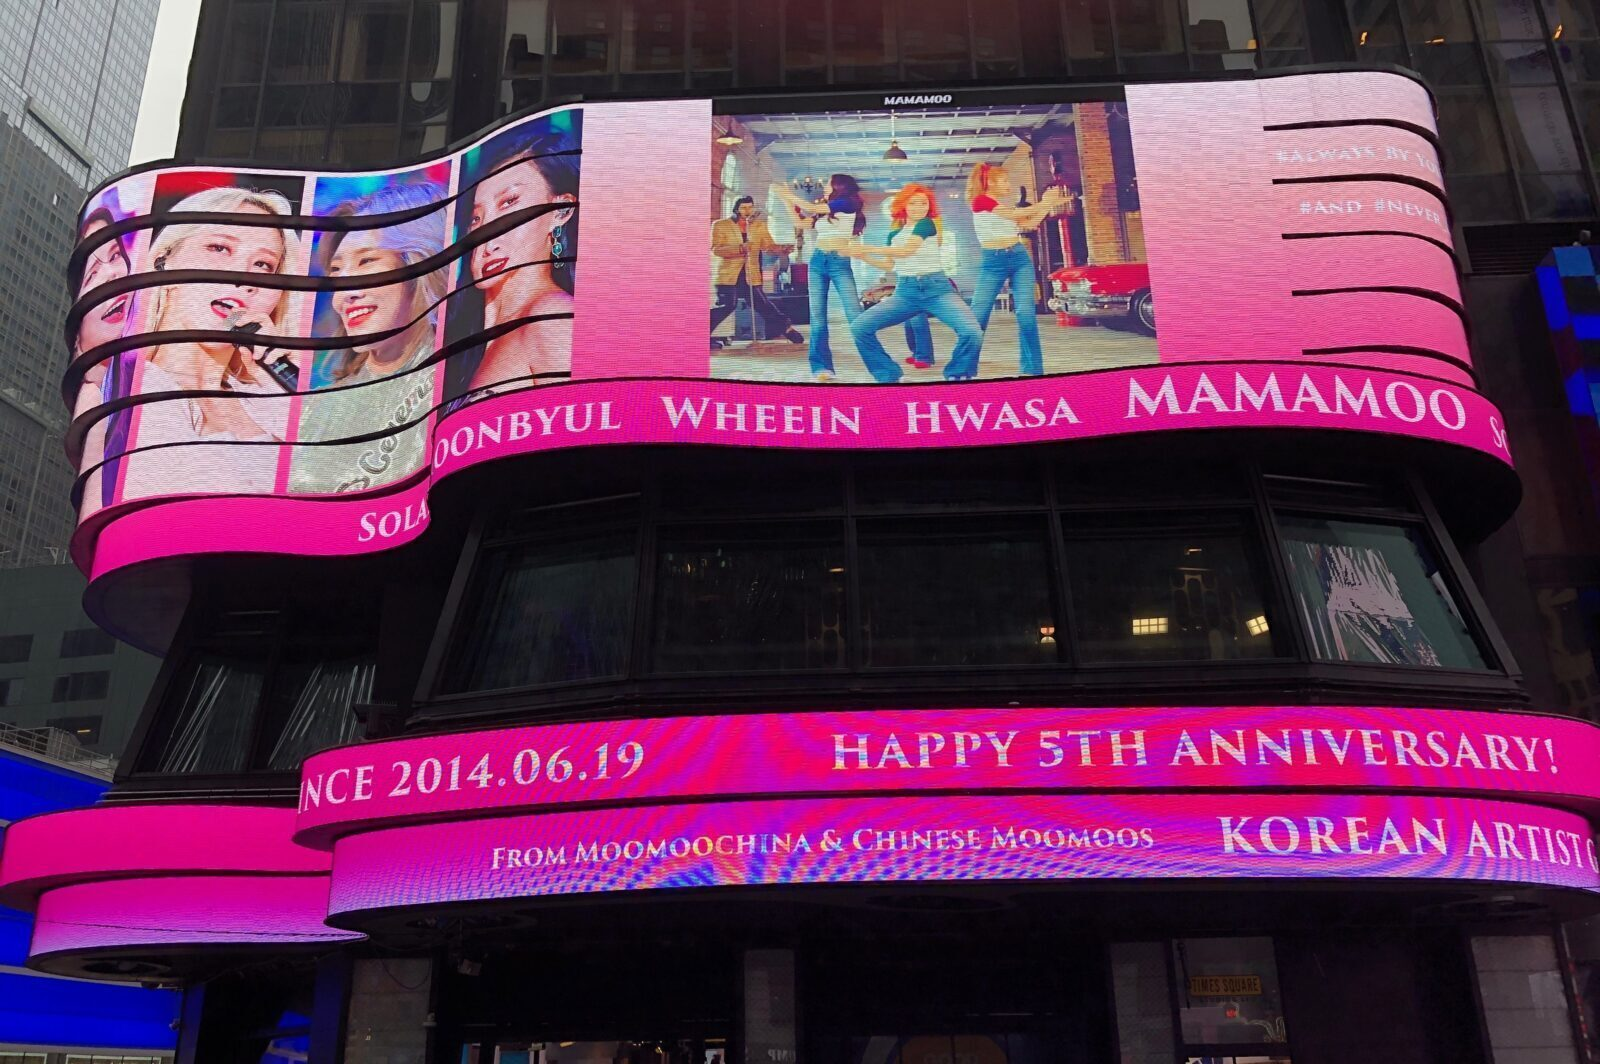 Fanmaum Inc Mamamoo Times Square Advertising ABC Supersign Billboard Advertising 4